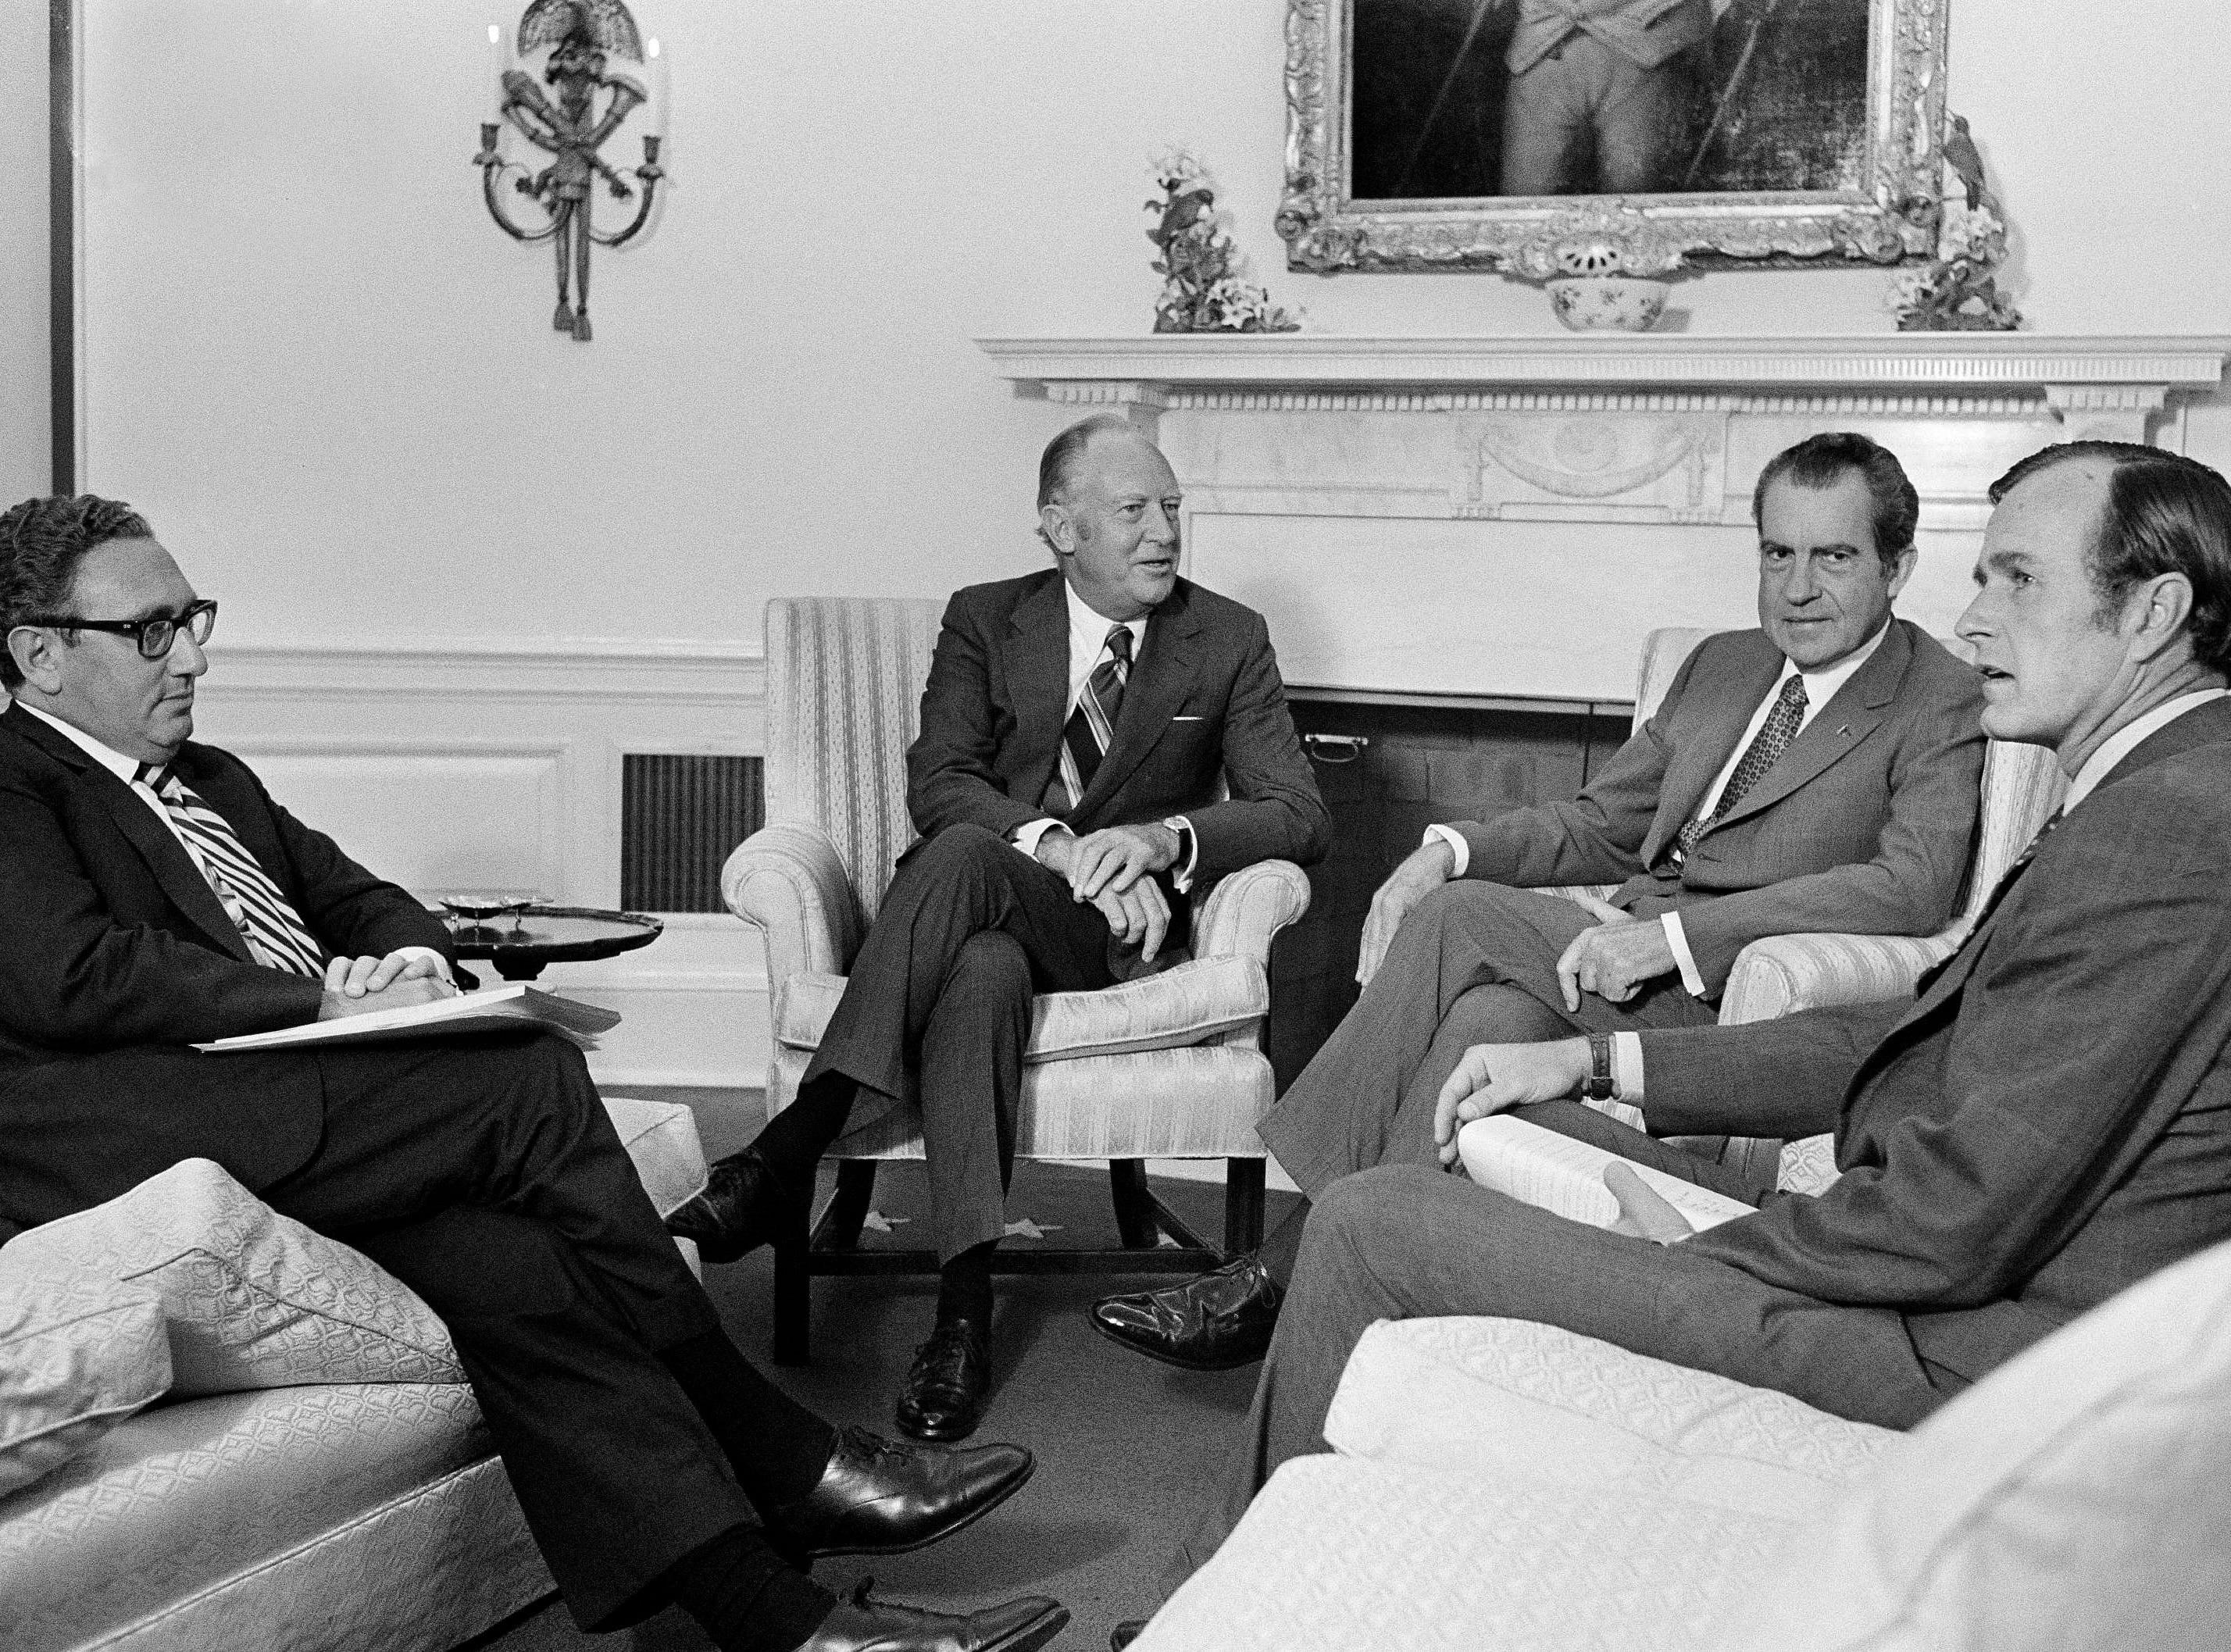 U.S. Ambassador to the United Nations George Bush meets with President Richard Nixon at the White House as the opening neared for the 27th U.N. General Assembly, Sept. 19, 1972. At left are National Security Advisor Henry Kissinger and Secretary of State William P. Rogers. (AP Photo/Jim Palmer)